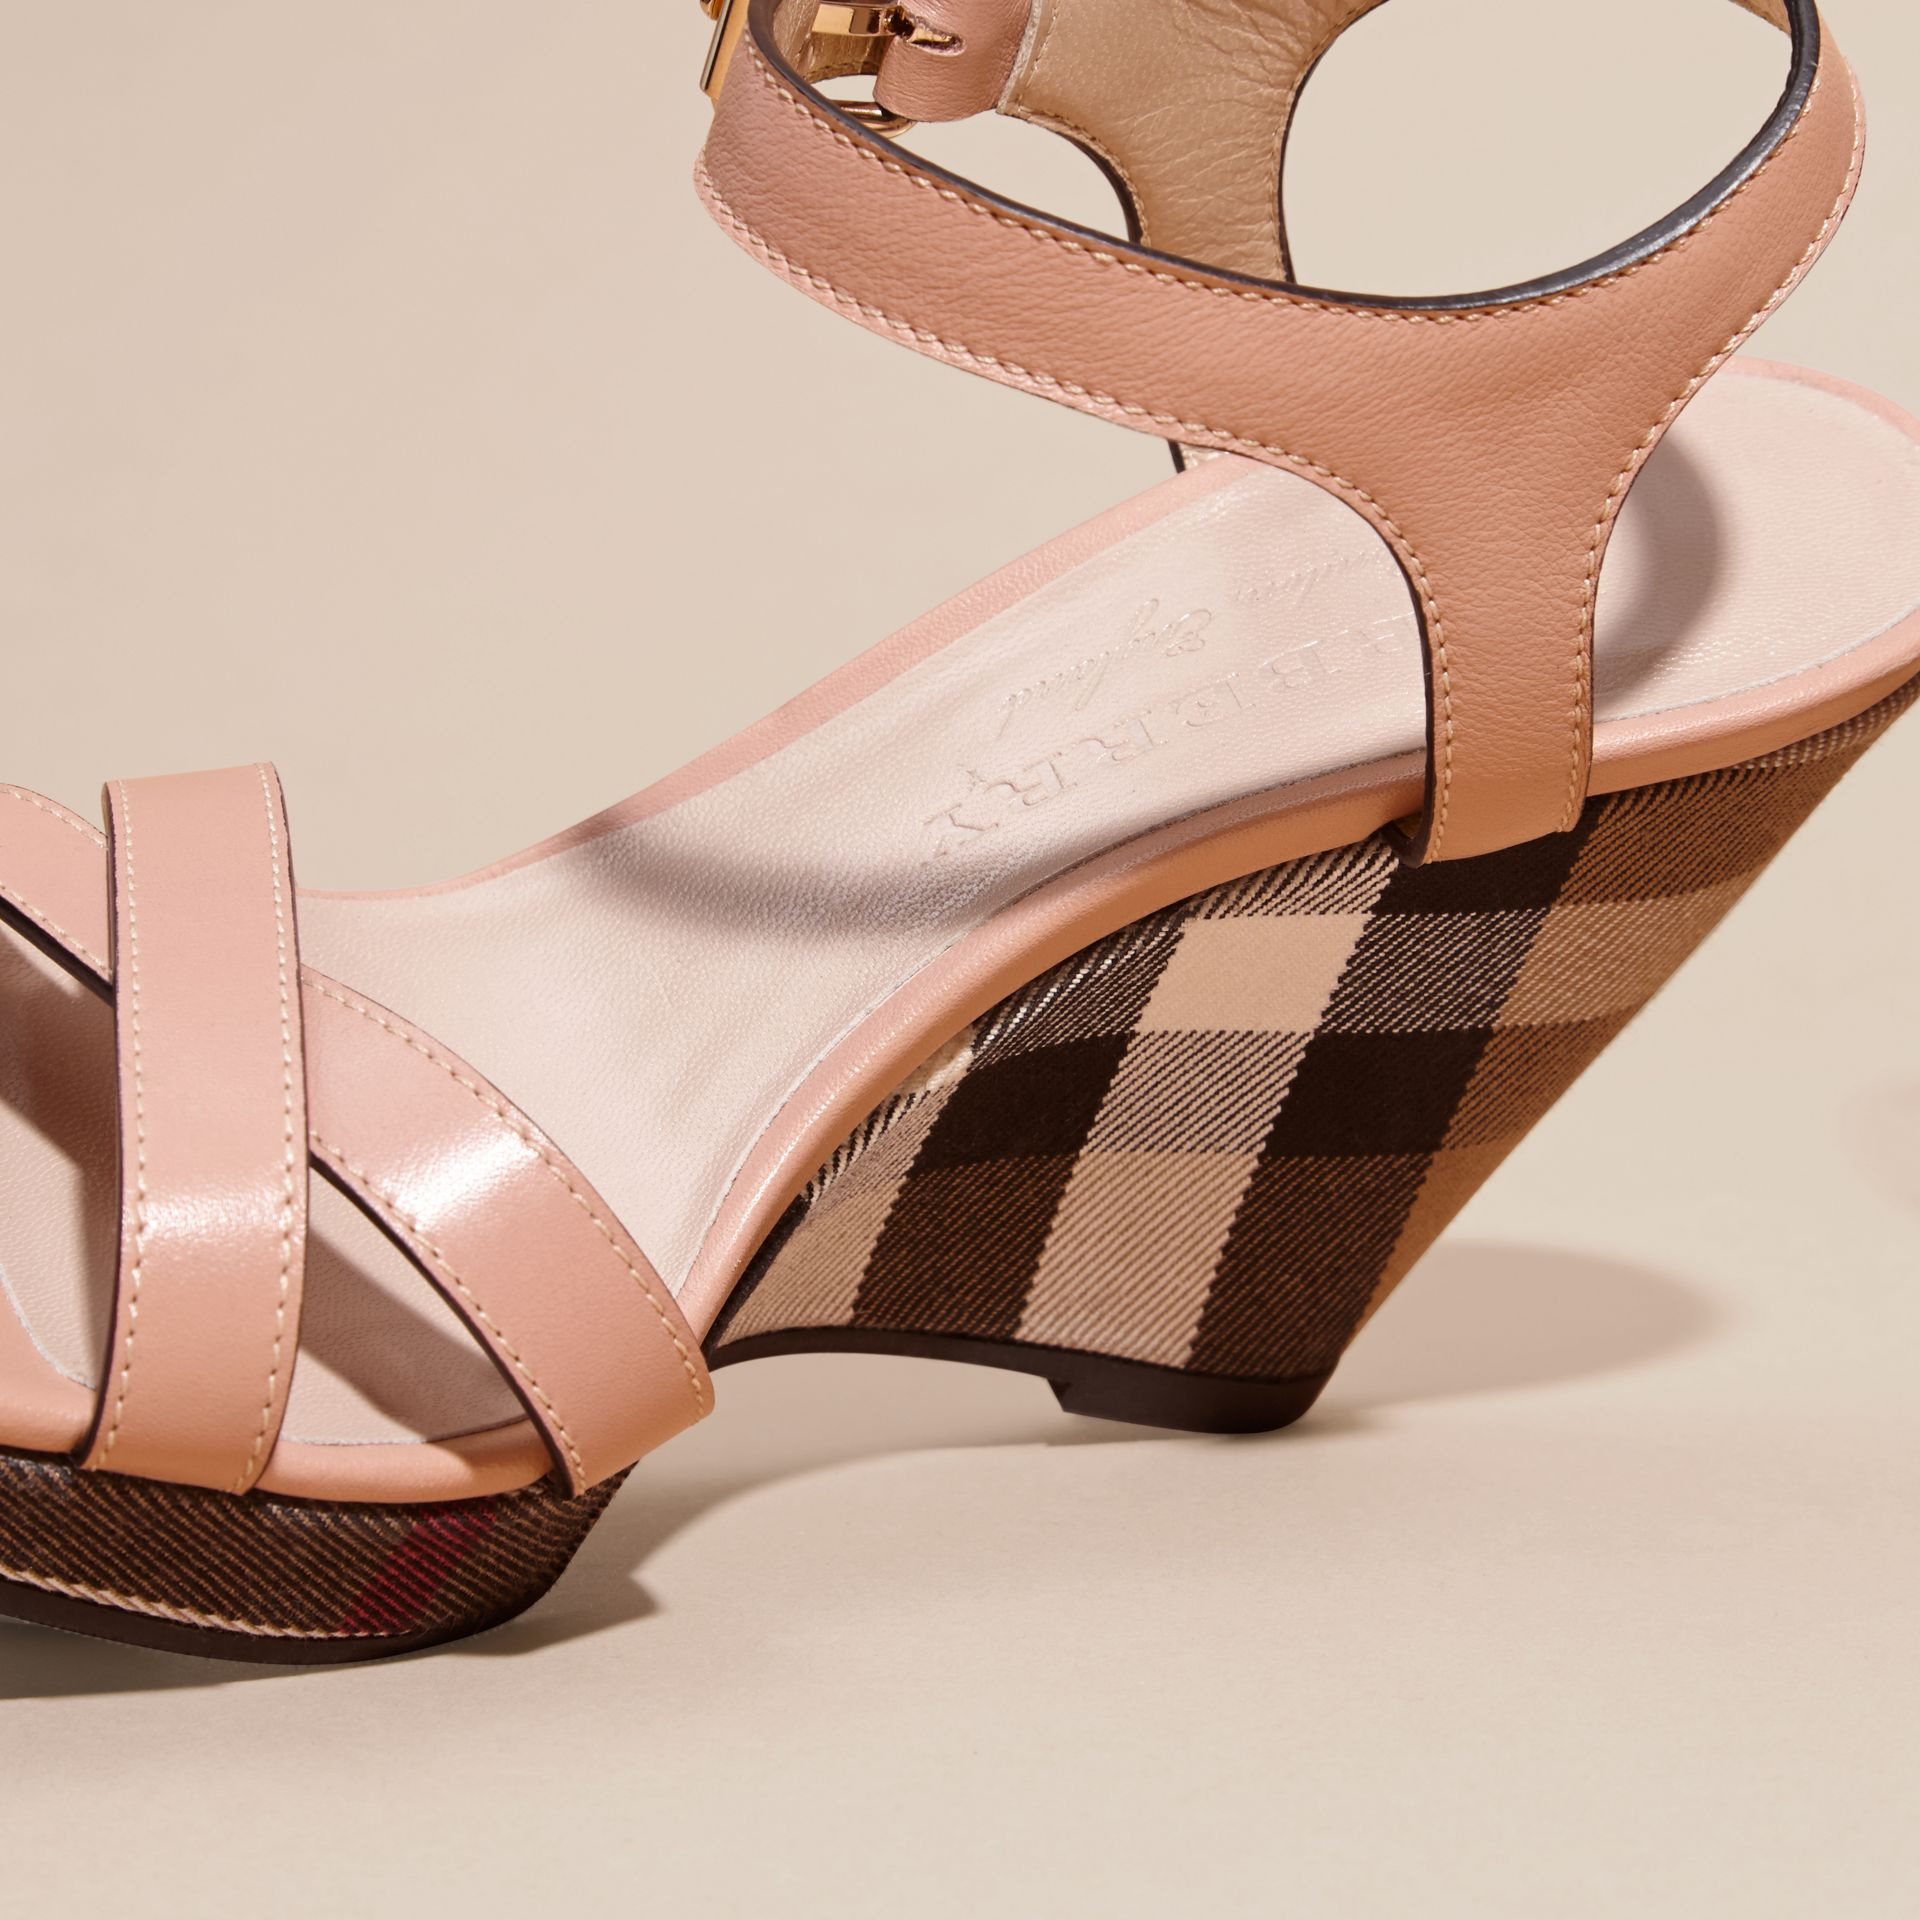 House Check Detail Leather Wedge Sandals in Nude Blush - Women | Burberry Canada - gallery image 5